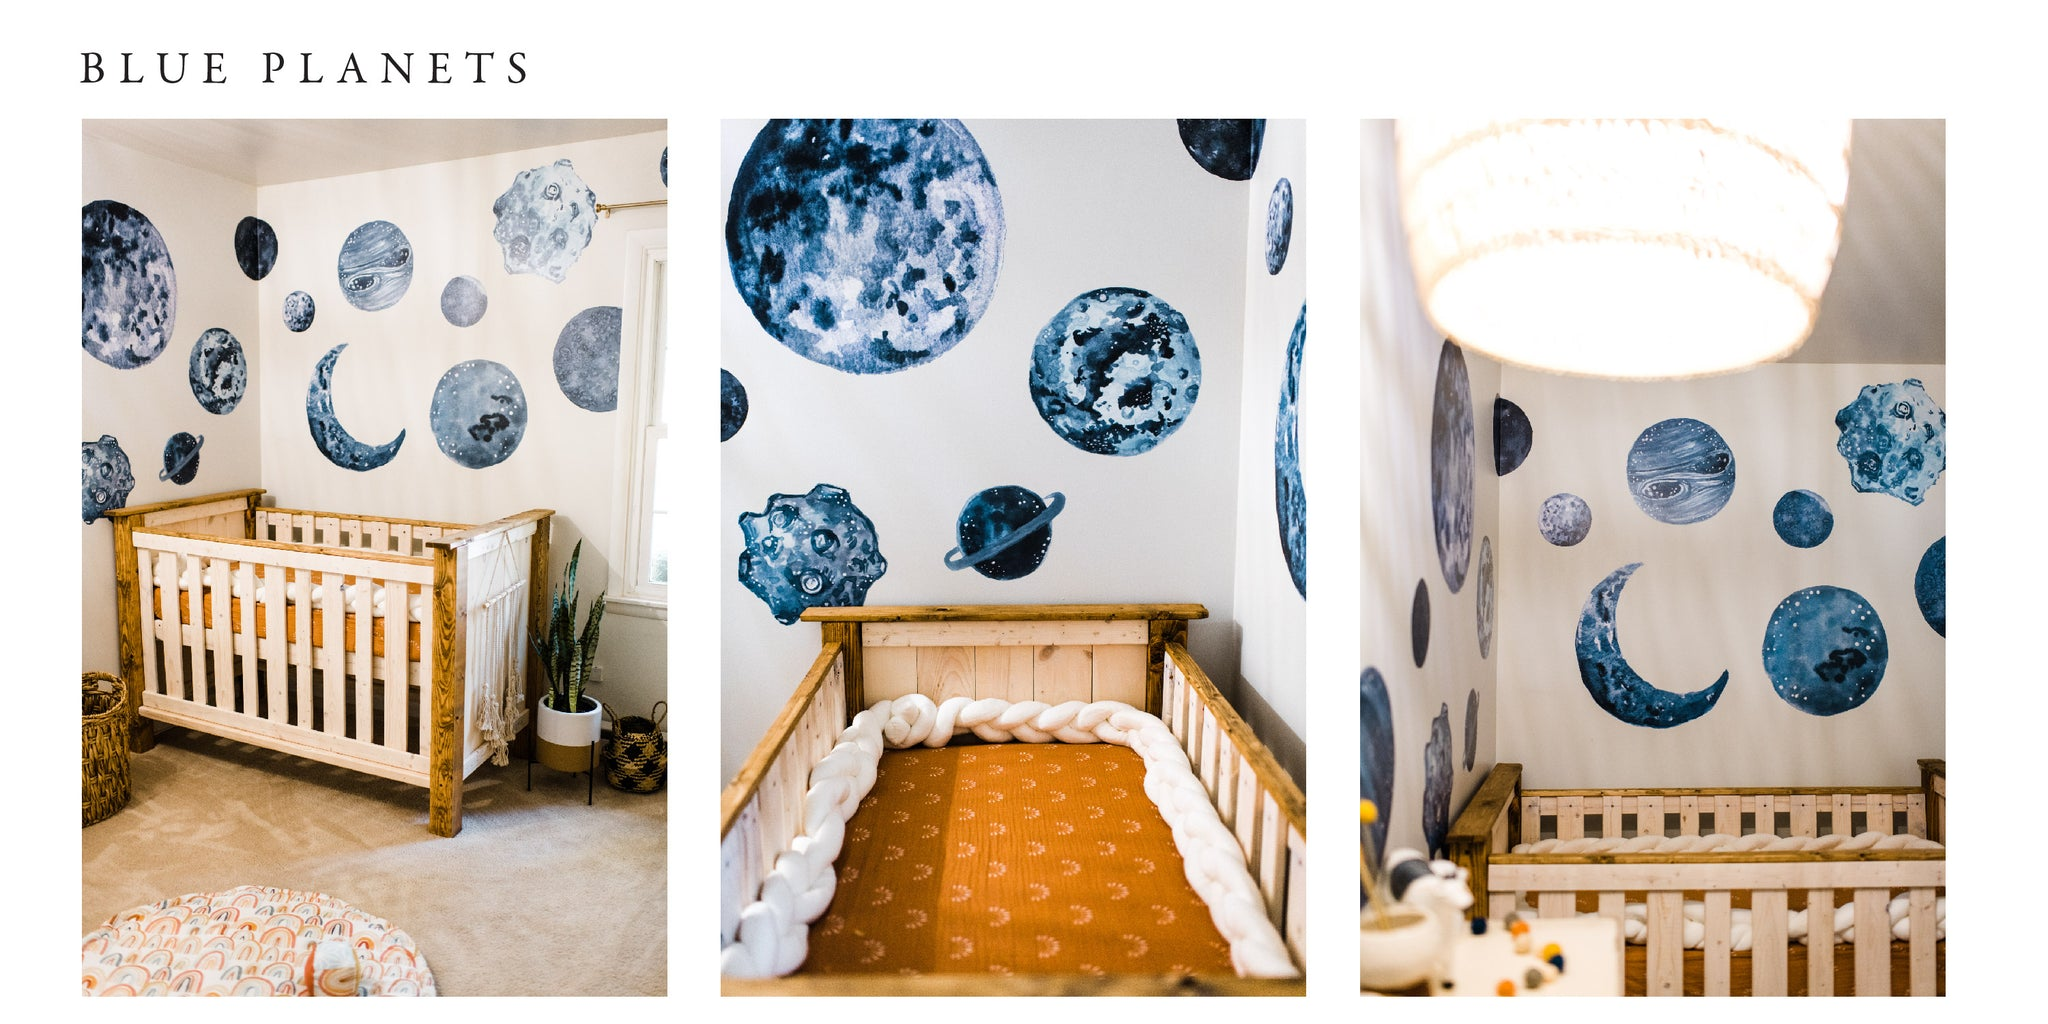 Wallpaper with celestial bodies